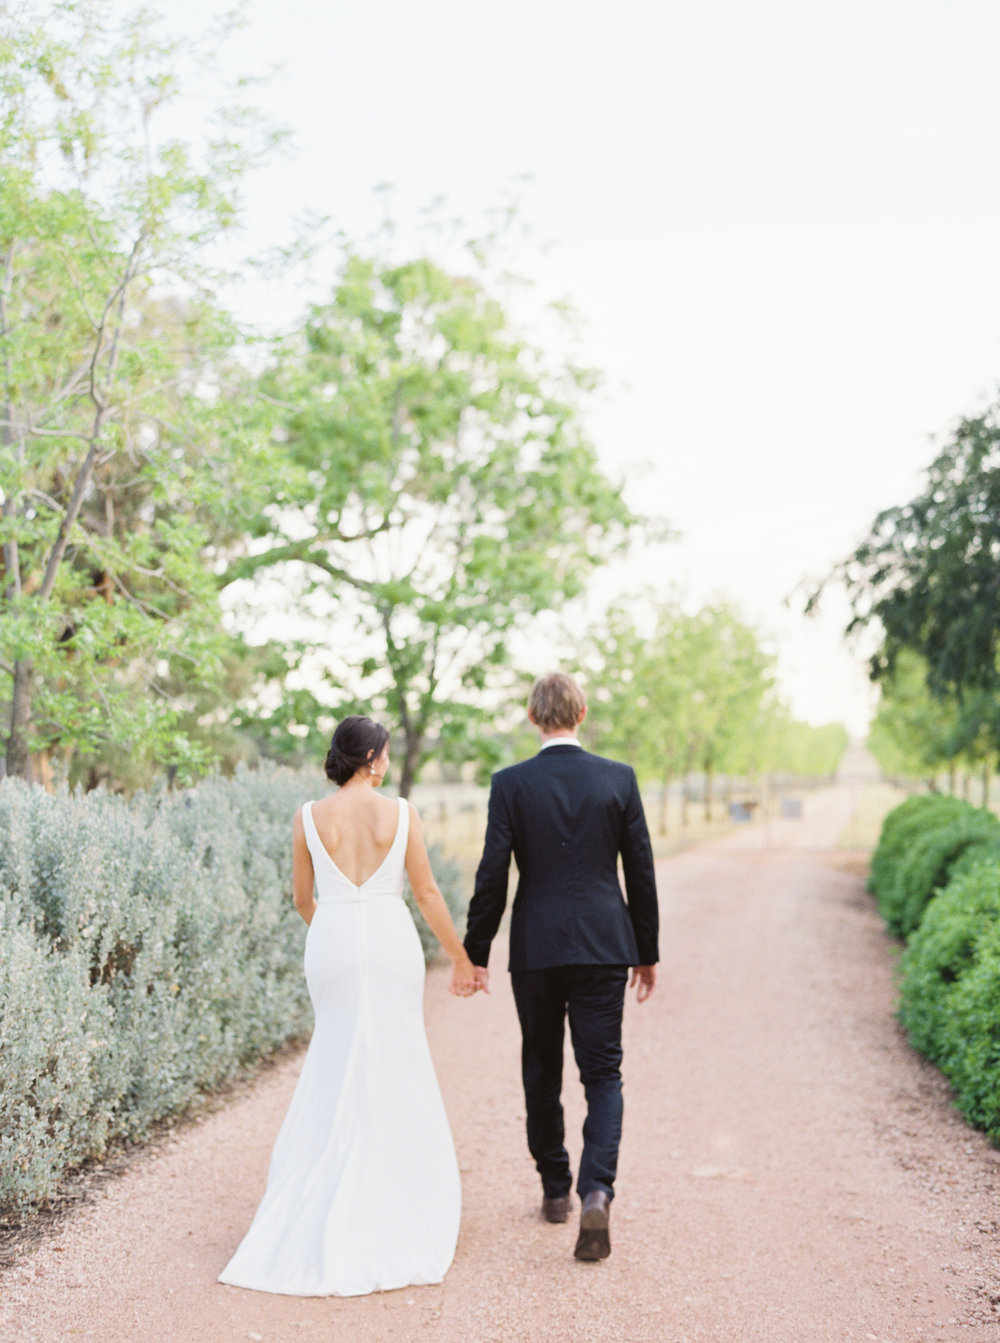 00066- Olive Tree Mediterranean Wedding in Mudgee NSW Australia Fine Art Film Wedding Lifestyle Photographer Sheri McMahon_.jpg